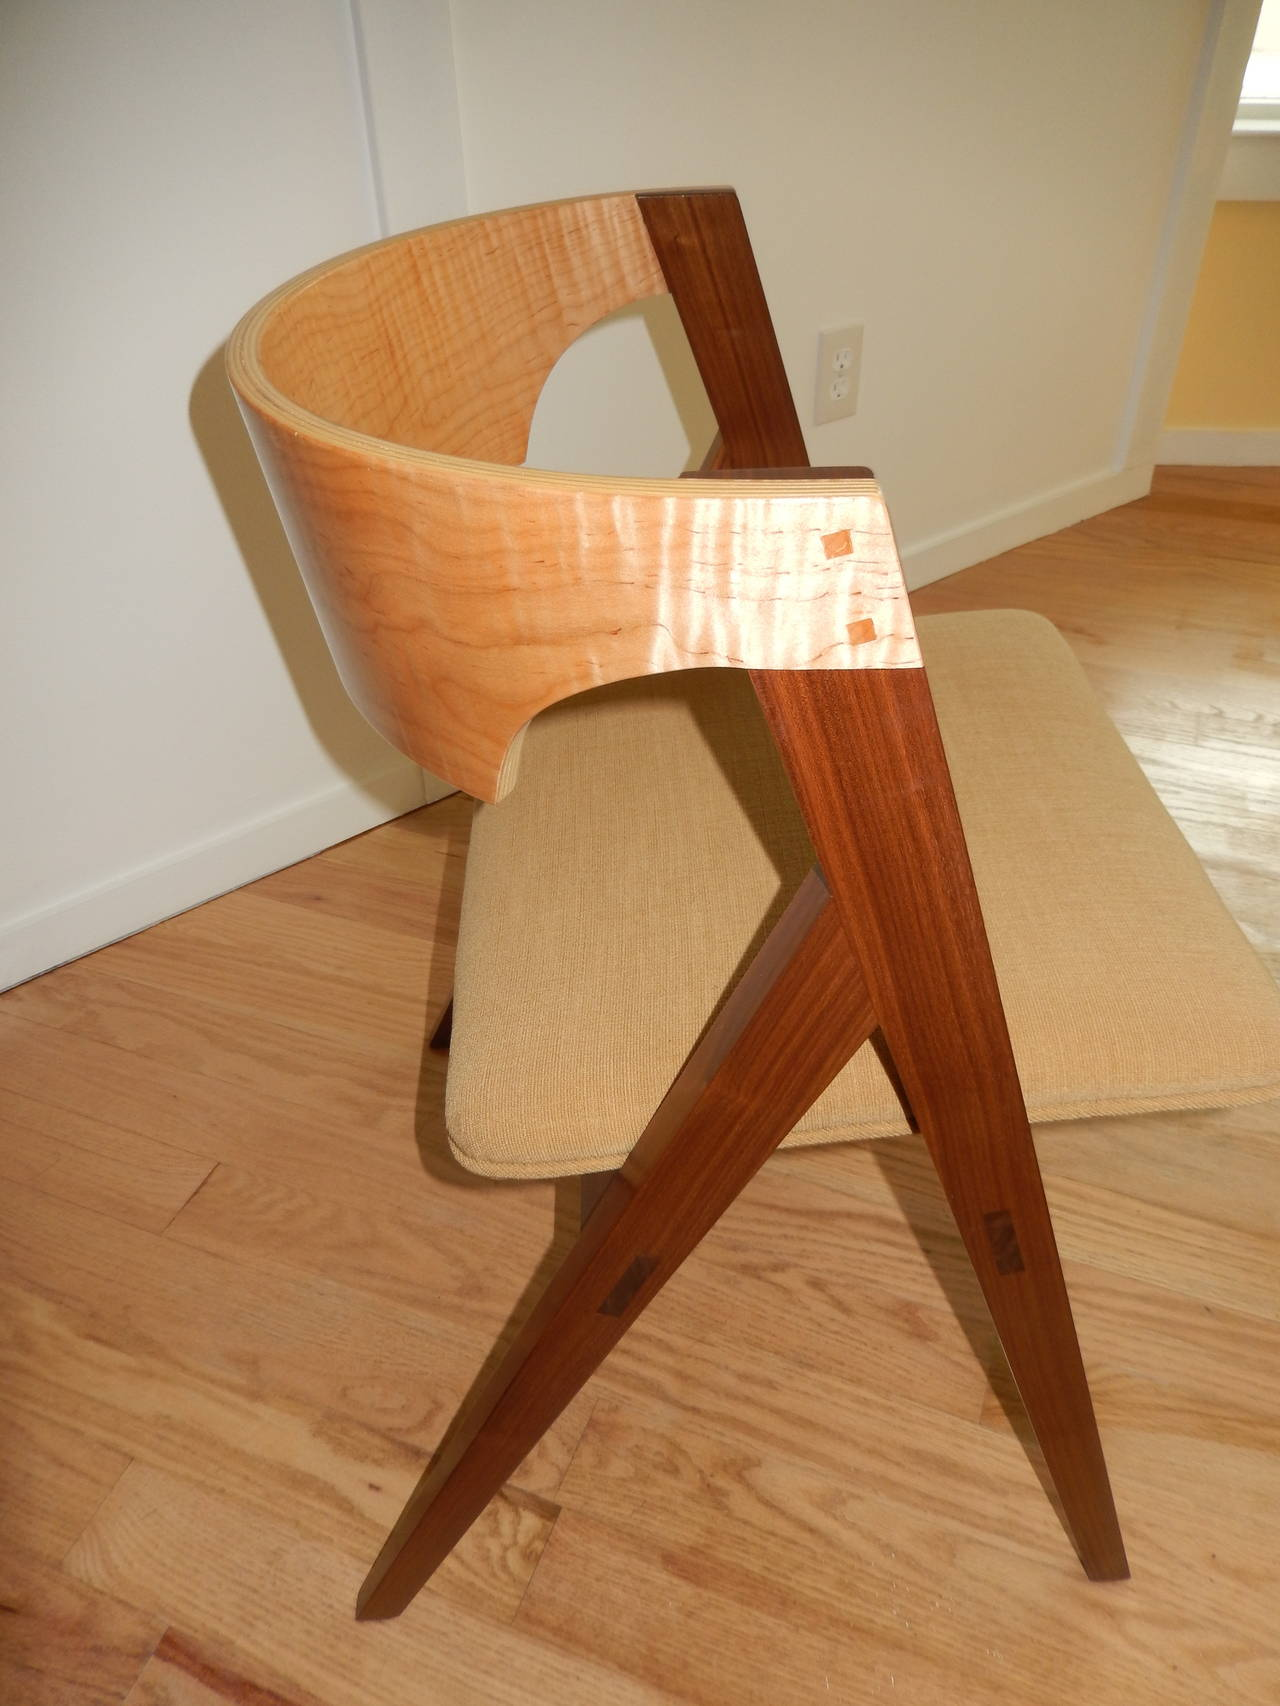 David N Ebner's Dining Room or Desk Chair In New Condition For Sale In Bellport, NY